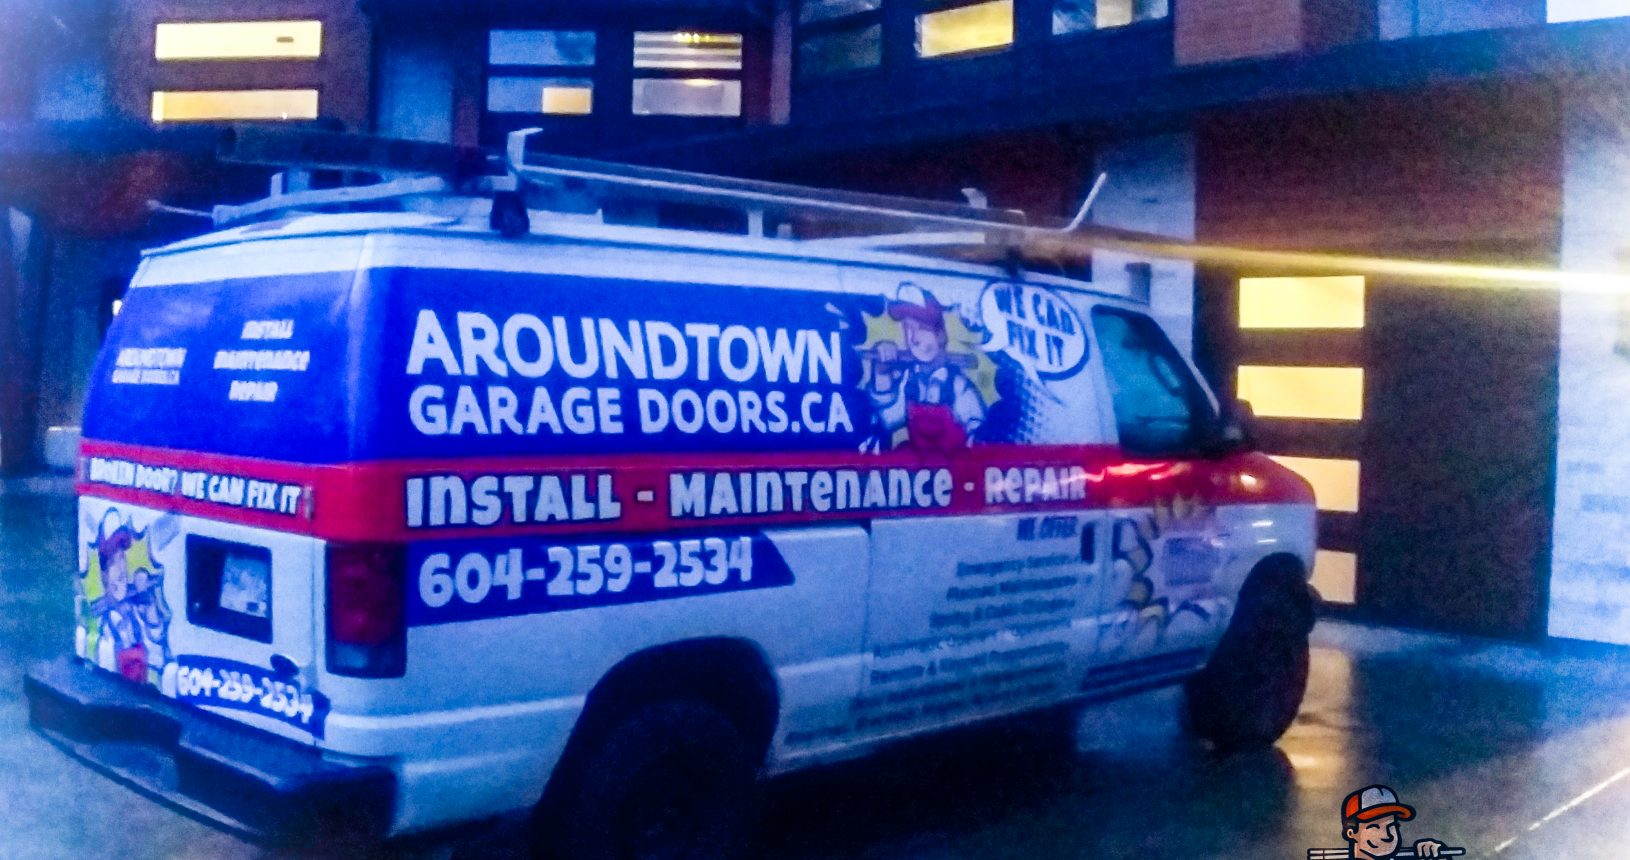 Aroundtown Garage Doors Ltd. - Service Call with Lenn Dolling - Serving Metro Vancouver - Richmond - Whiterock - Delta - Surrey - North Vancouver - Burnaby - Maple Ridge